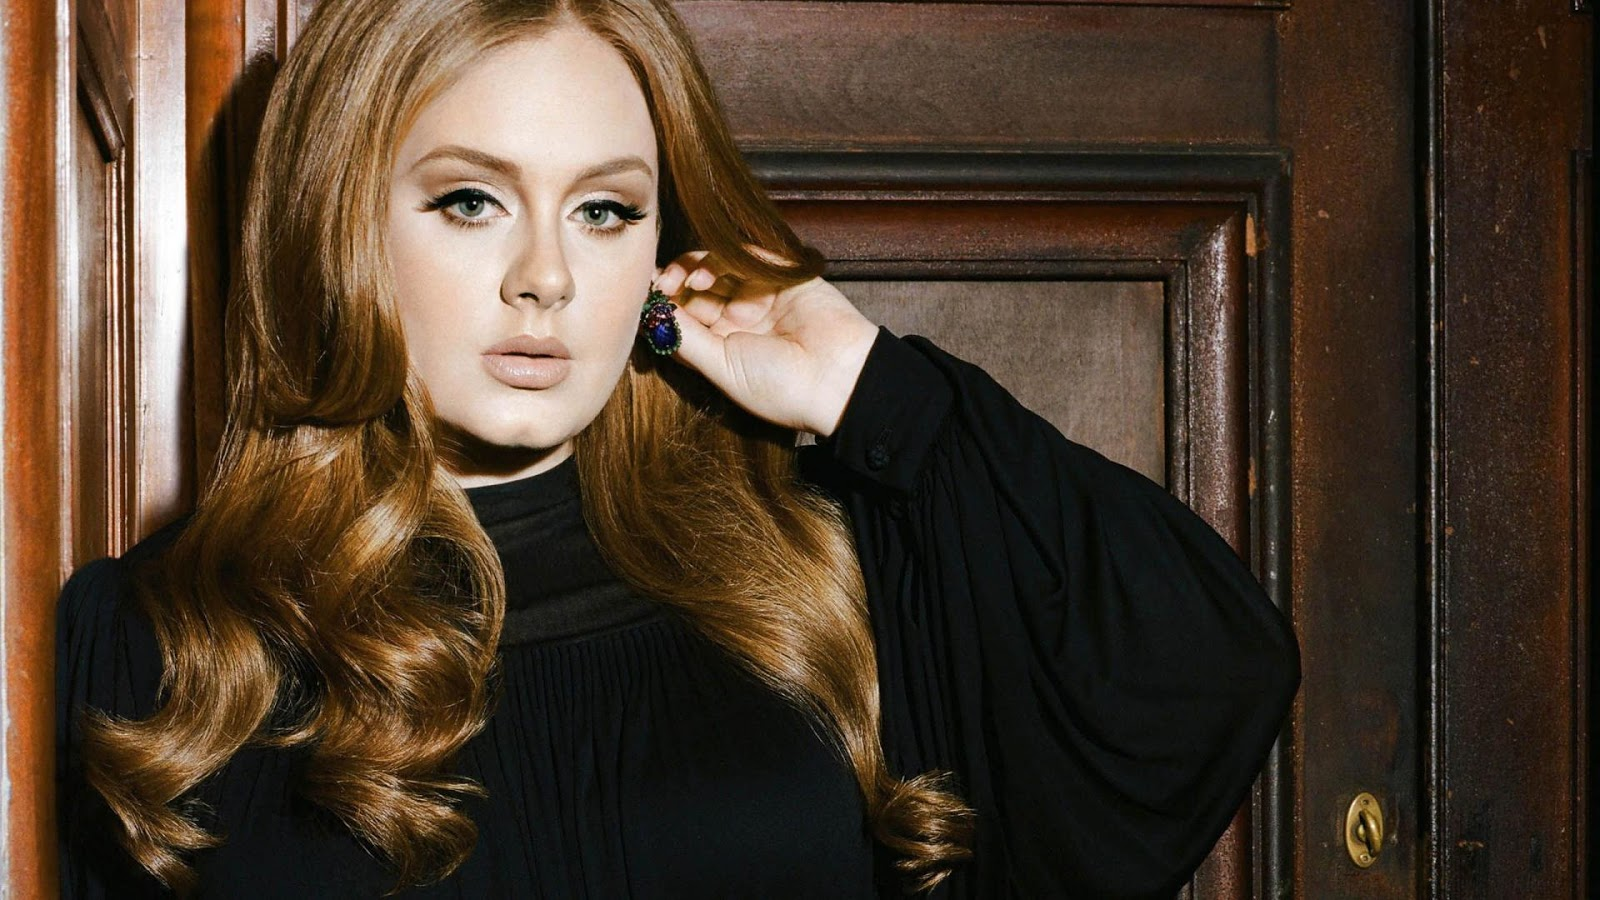 Hollywood: Adele Profile, Biography, Beautiful Pictures